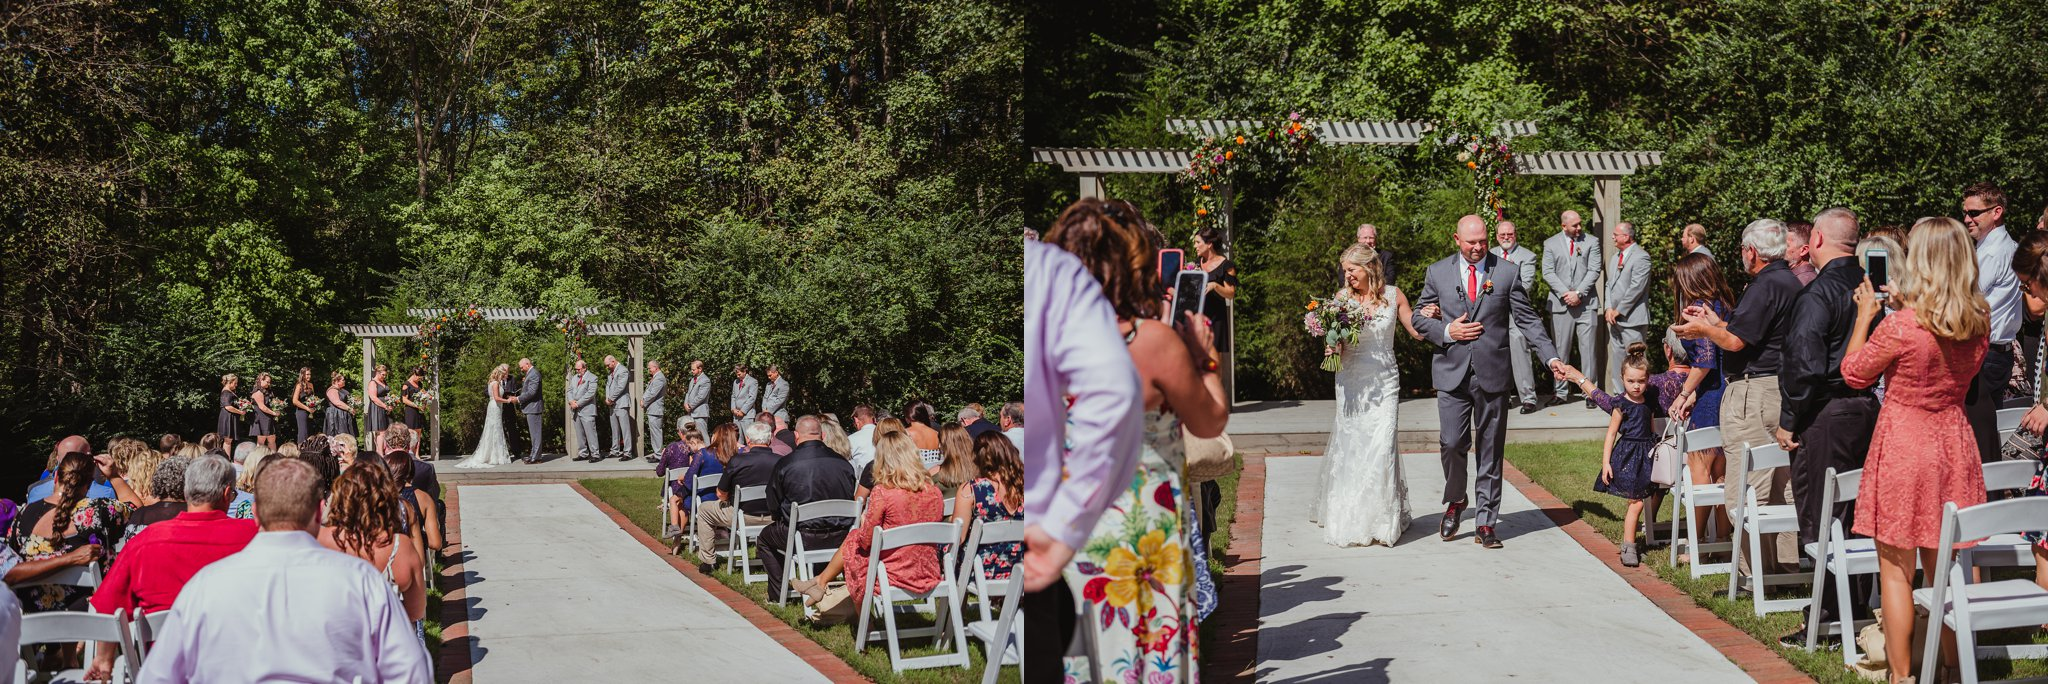 The bride and groom pray and walk down the aisle together after their wedding ceremony at Cedar Grove Acres near North Carolina, pictures by Rose Trail Images.